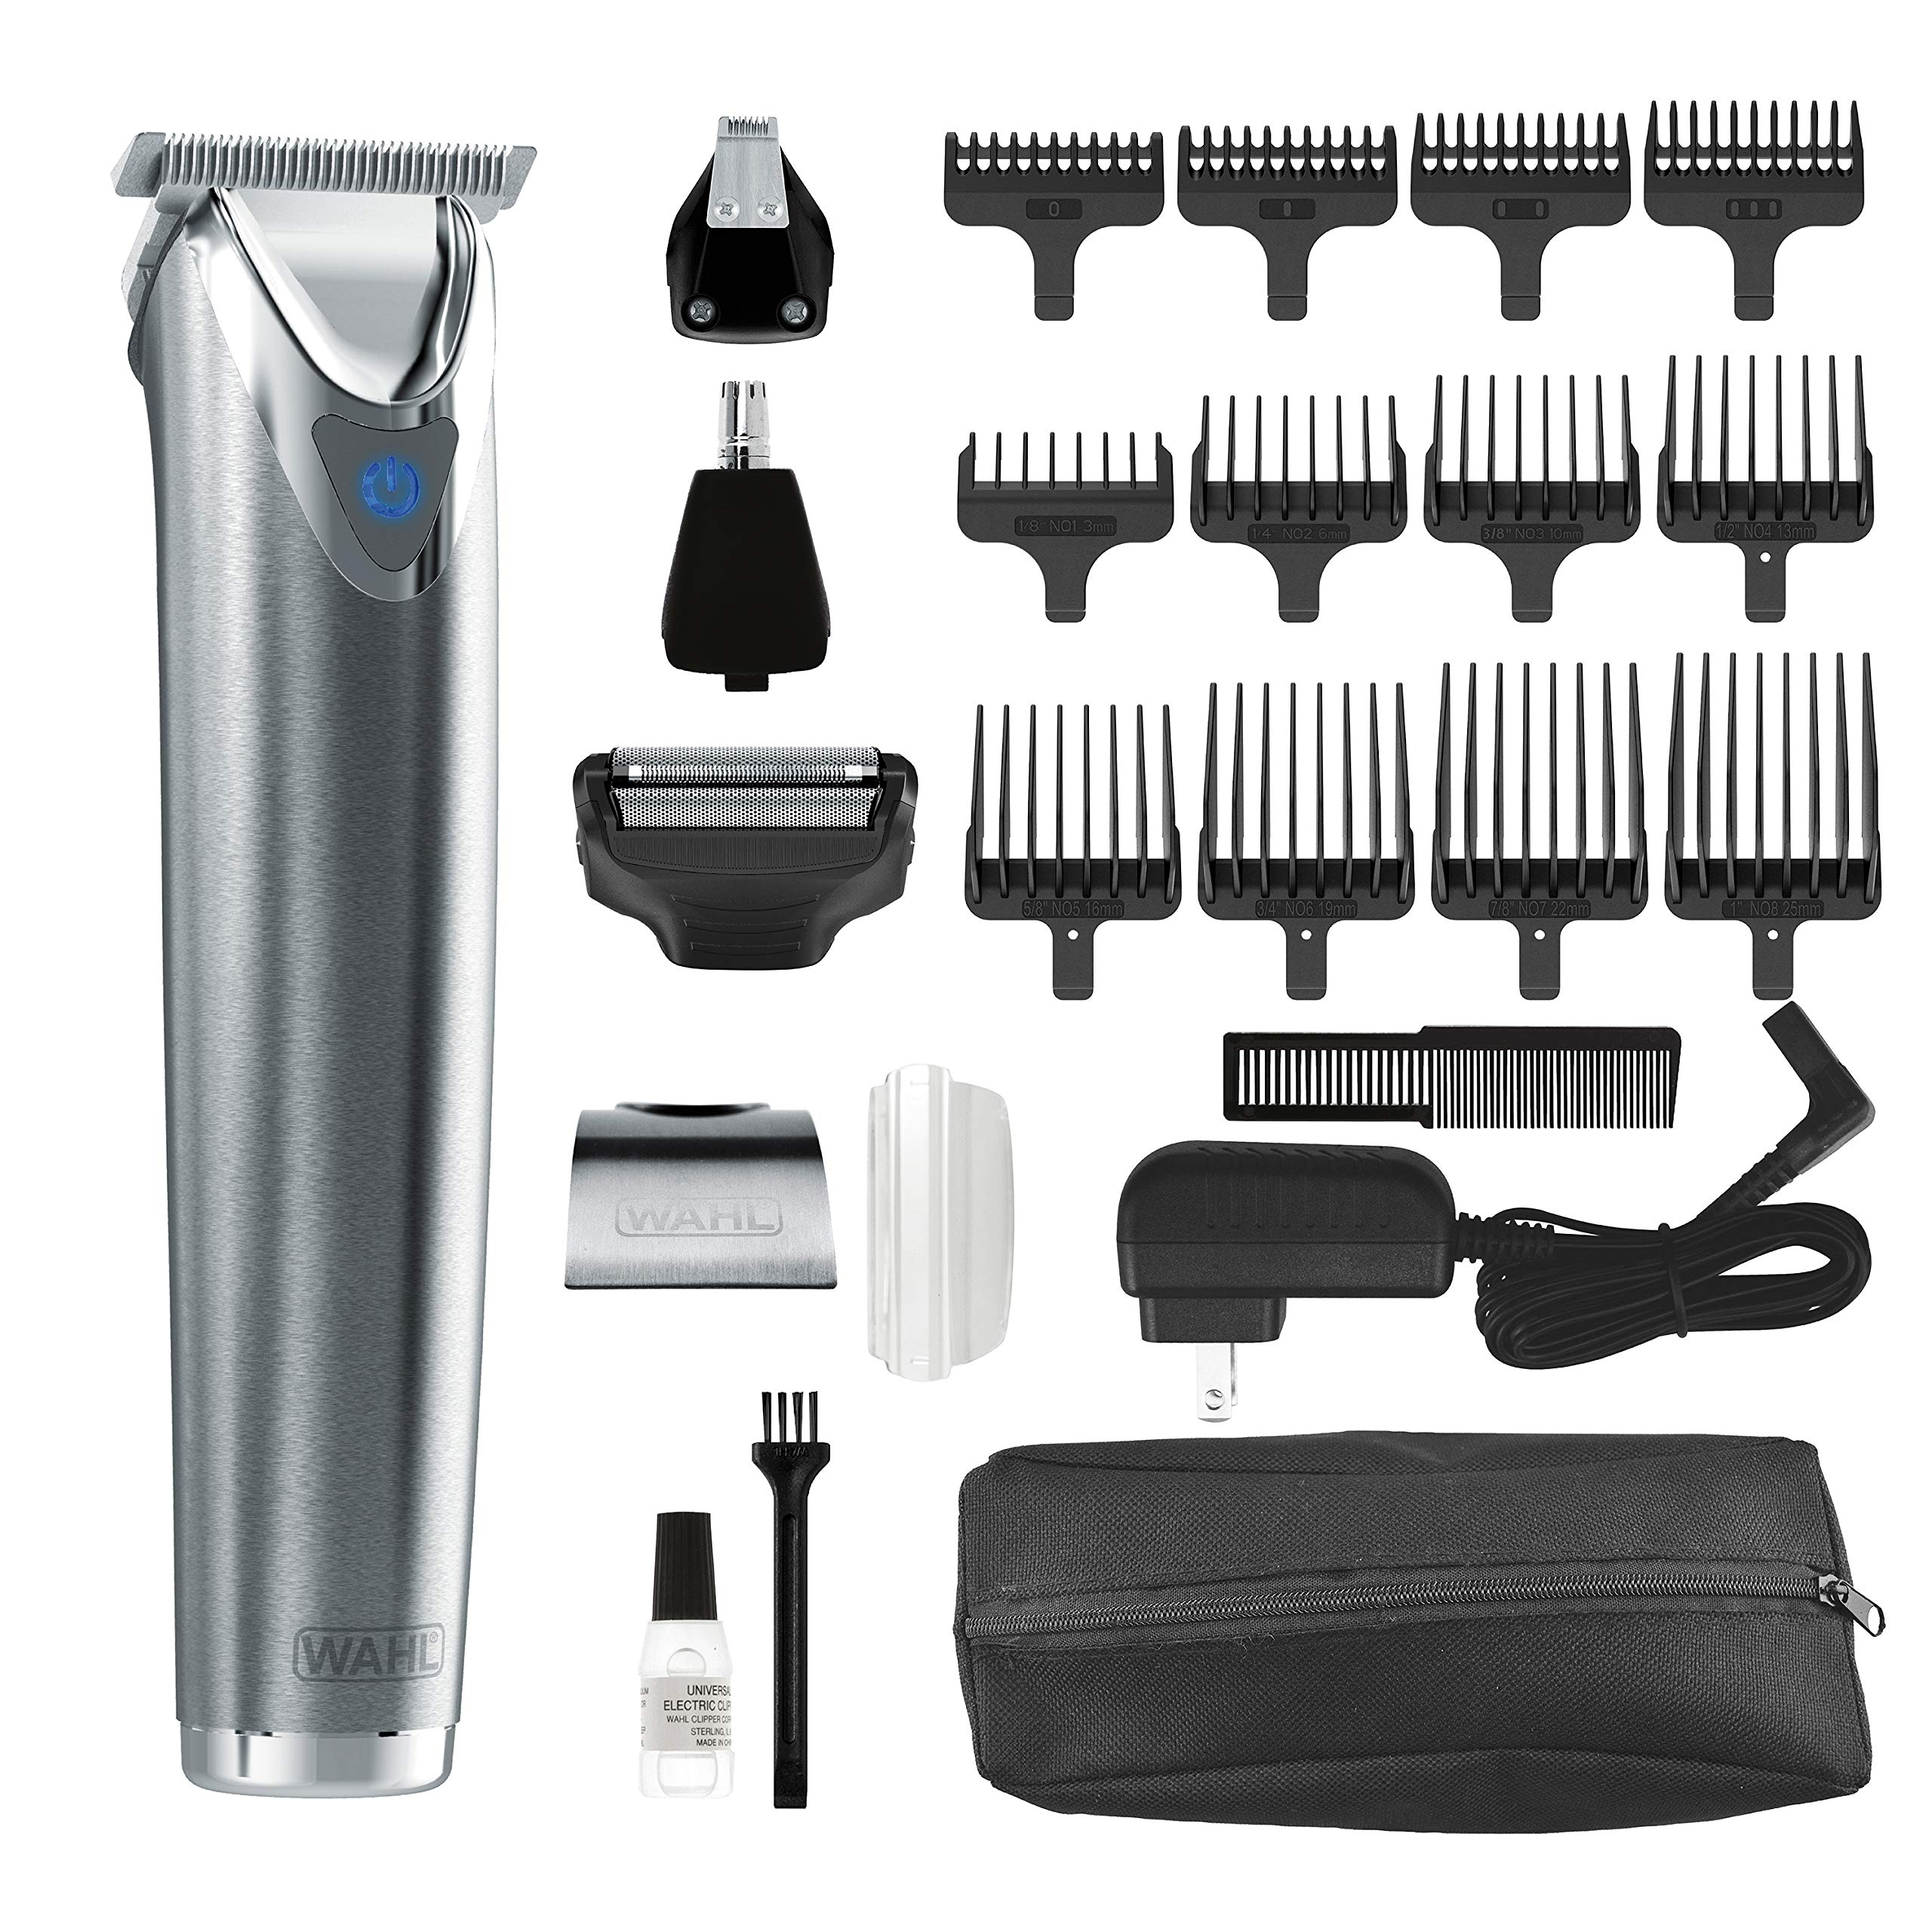 Wahl Stainless Steel Lithium Ion Plus - Beard Trimmer and Shaver for Men | Nose and Ear Hair Trimmer | Rechargeable All in One Men's Grooming Kit | By the Brand Used by Professionals | Model 9864SS by WAHL